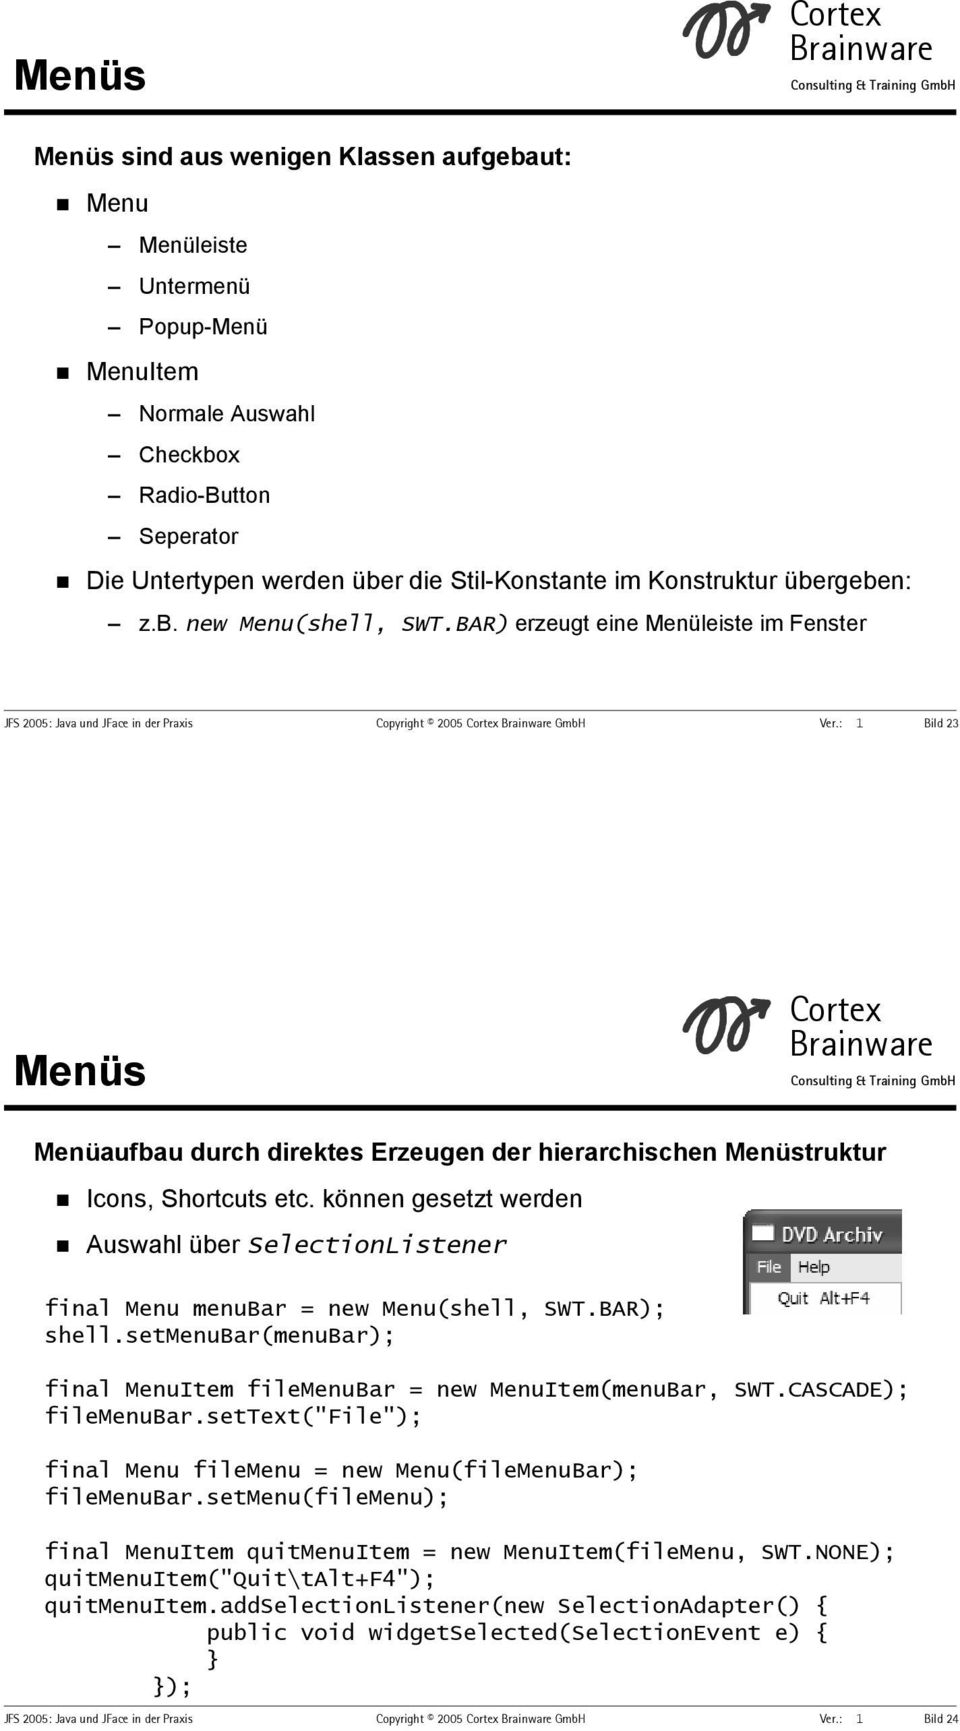 können gesetzt werden Auswahl über SelectionListener final Menu menubar = new Menu(shell, SWT.BAR); shell.setmenubar(menubar); final MenuItem filemenubar = new MenuItem(menuBar, SWT.